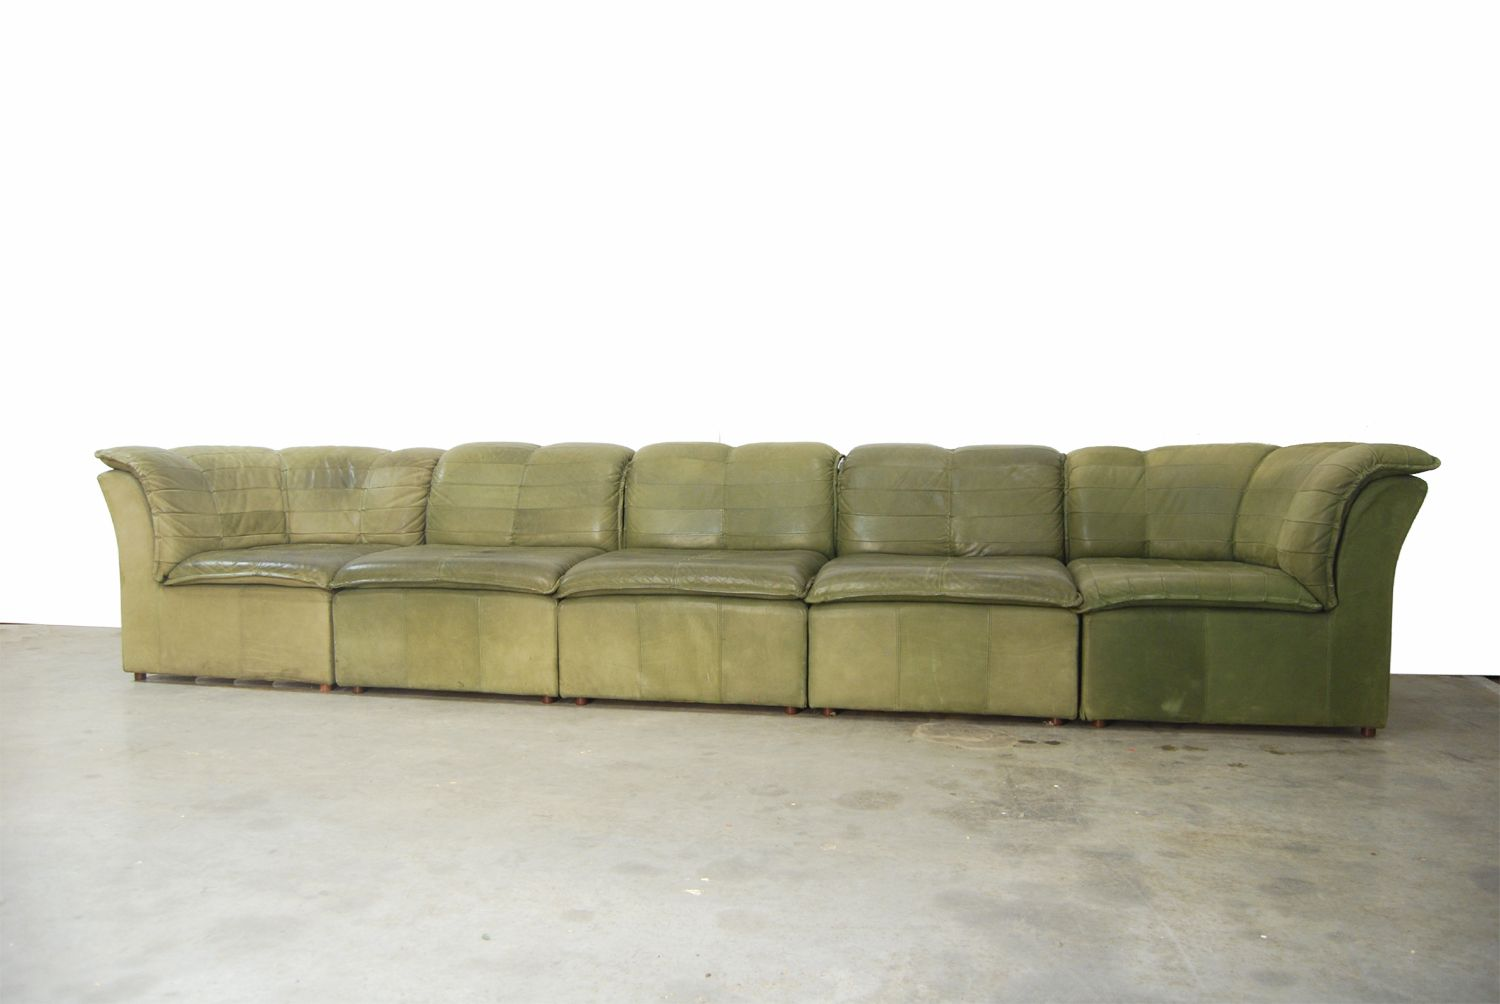 nubuck leather sofa gumtree edinburgh corner bed modular from laauser 1970s for sale